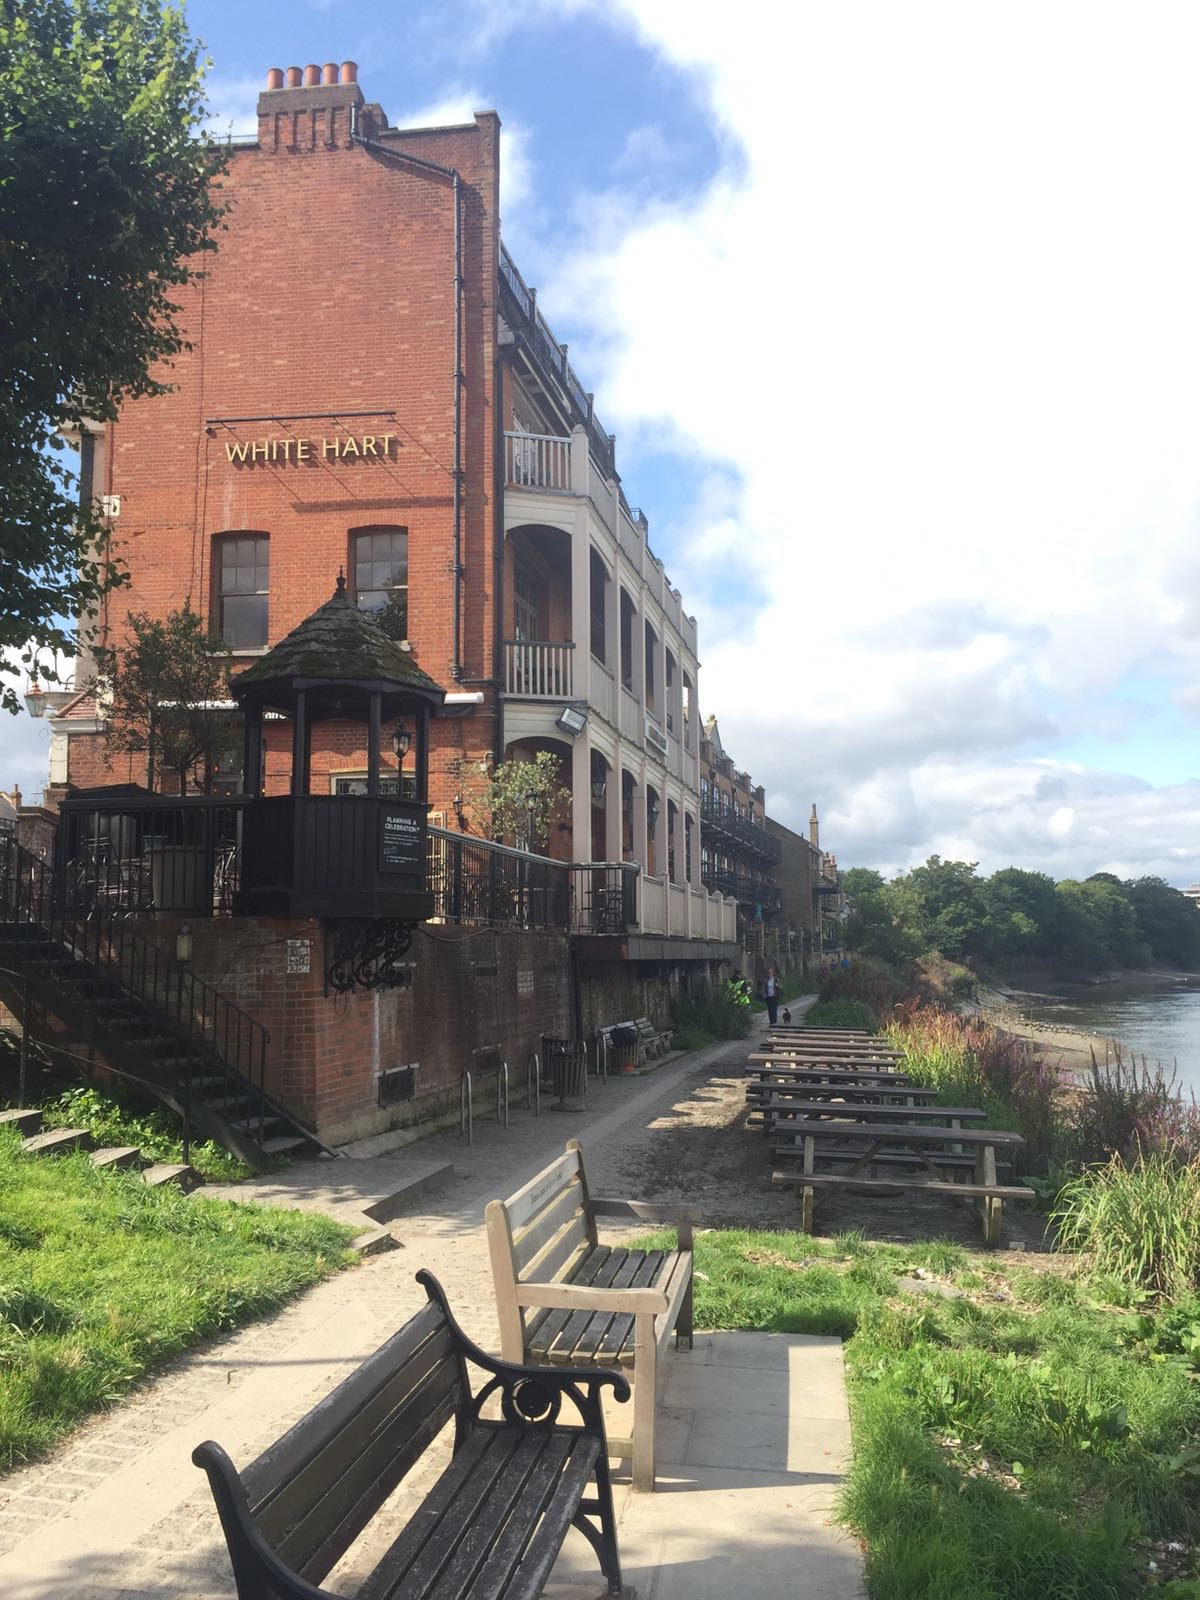 The pubs of Barnes, London